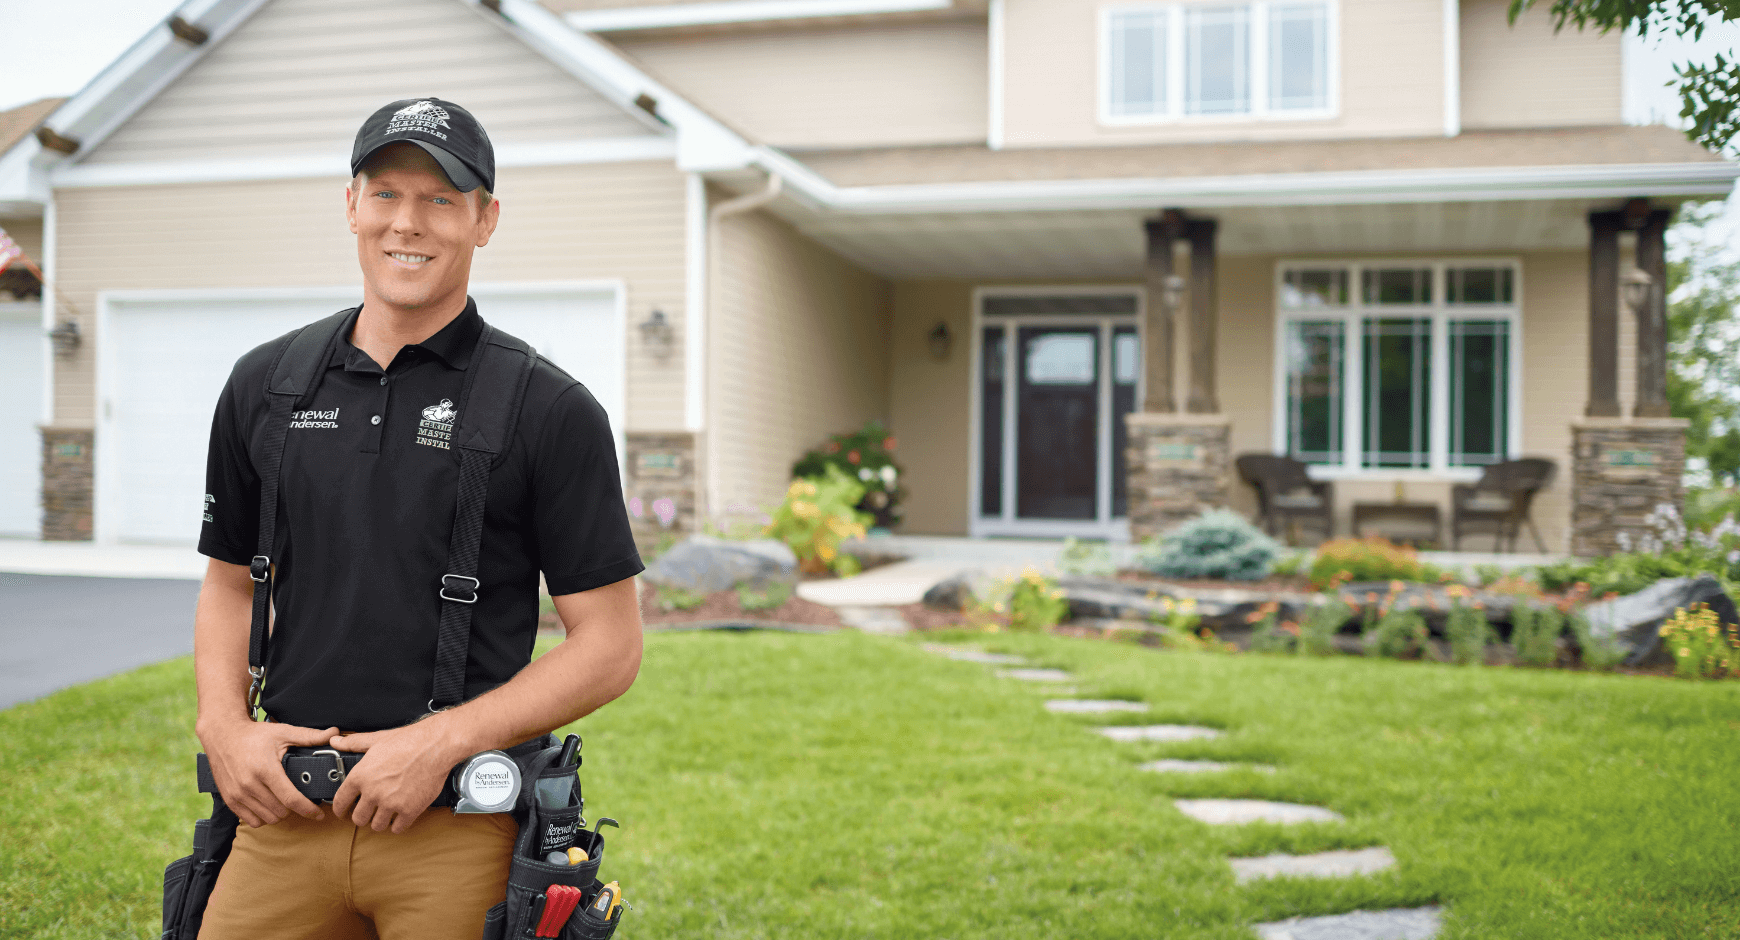 Image of a man standing in front of a home